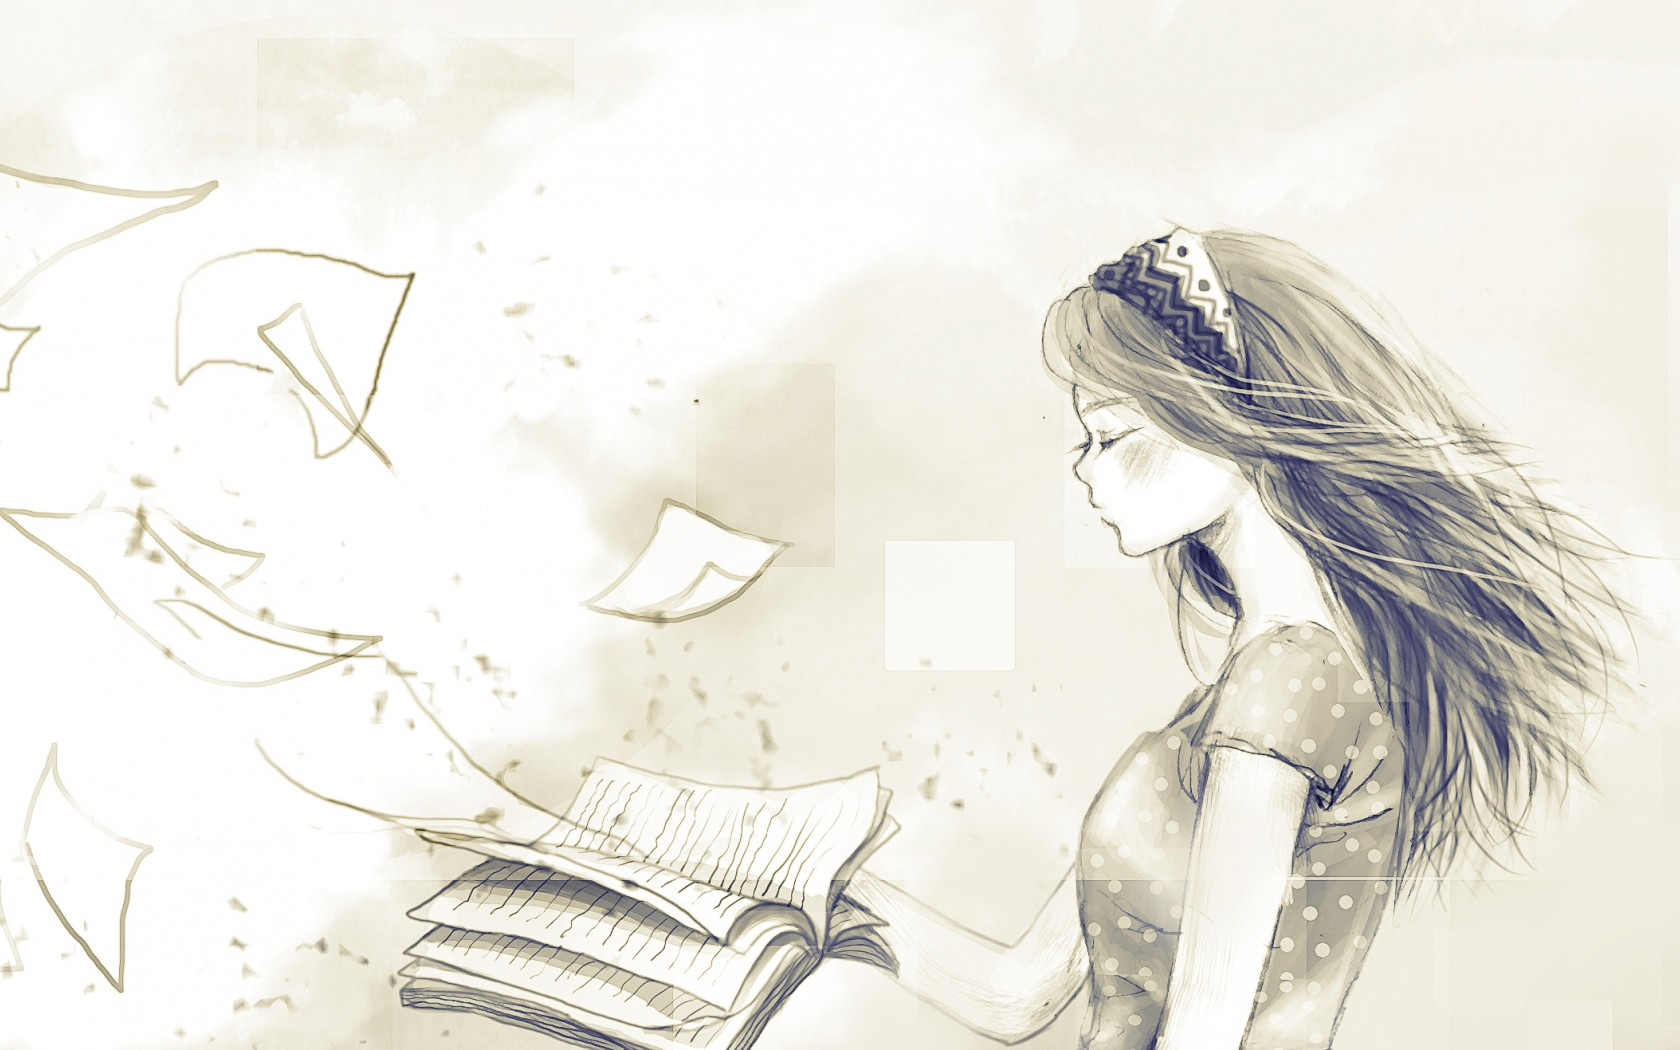 Drawn wallpaper black book Drawing papers fly girl